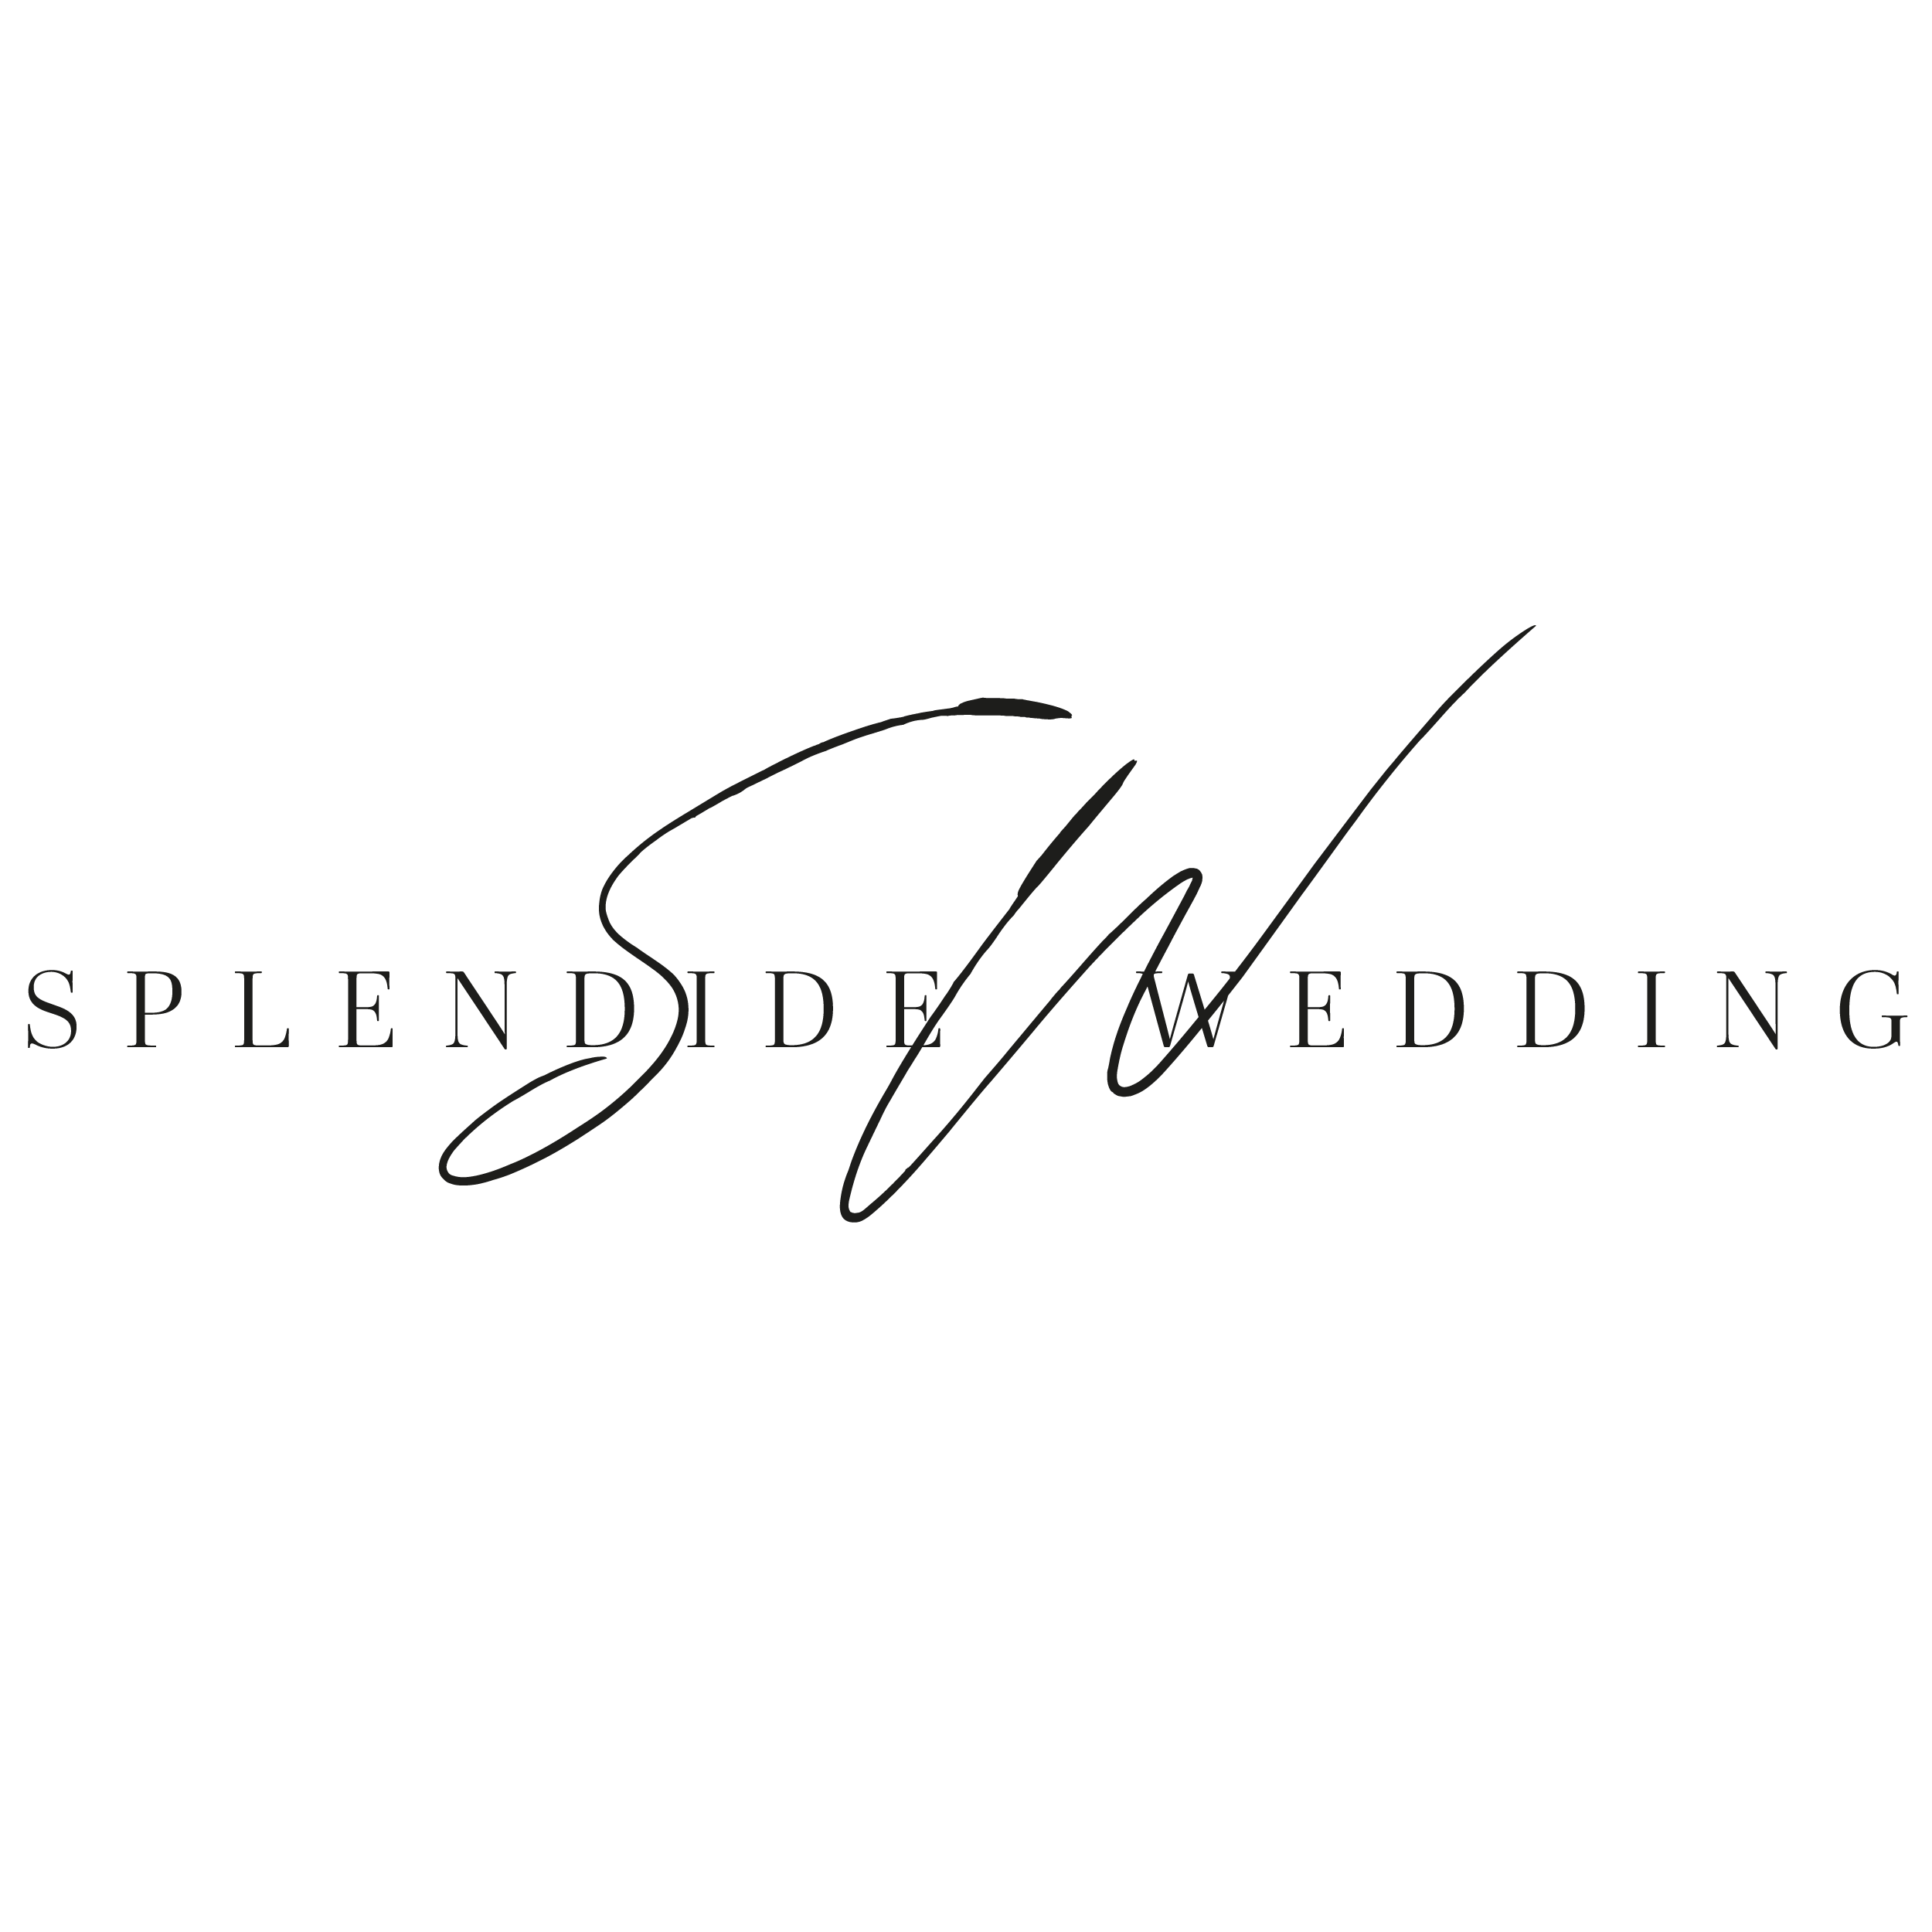 Splendide Wedding